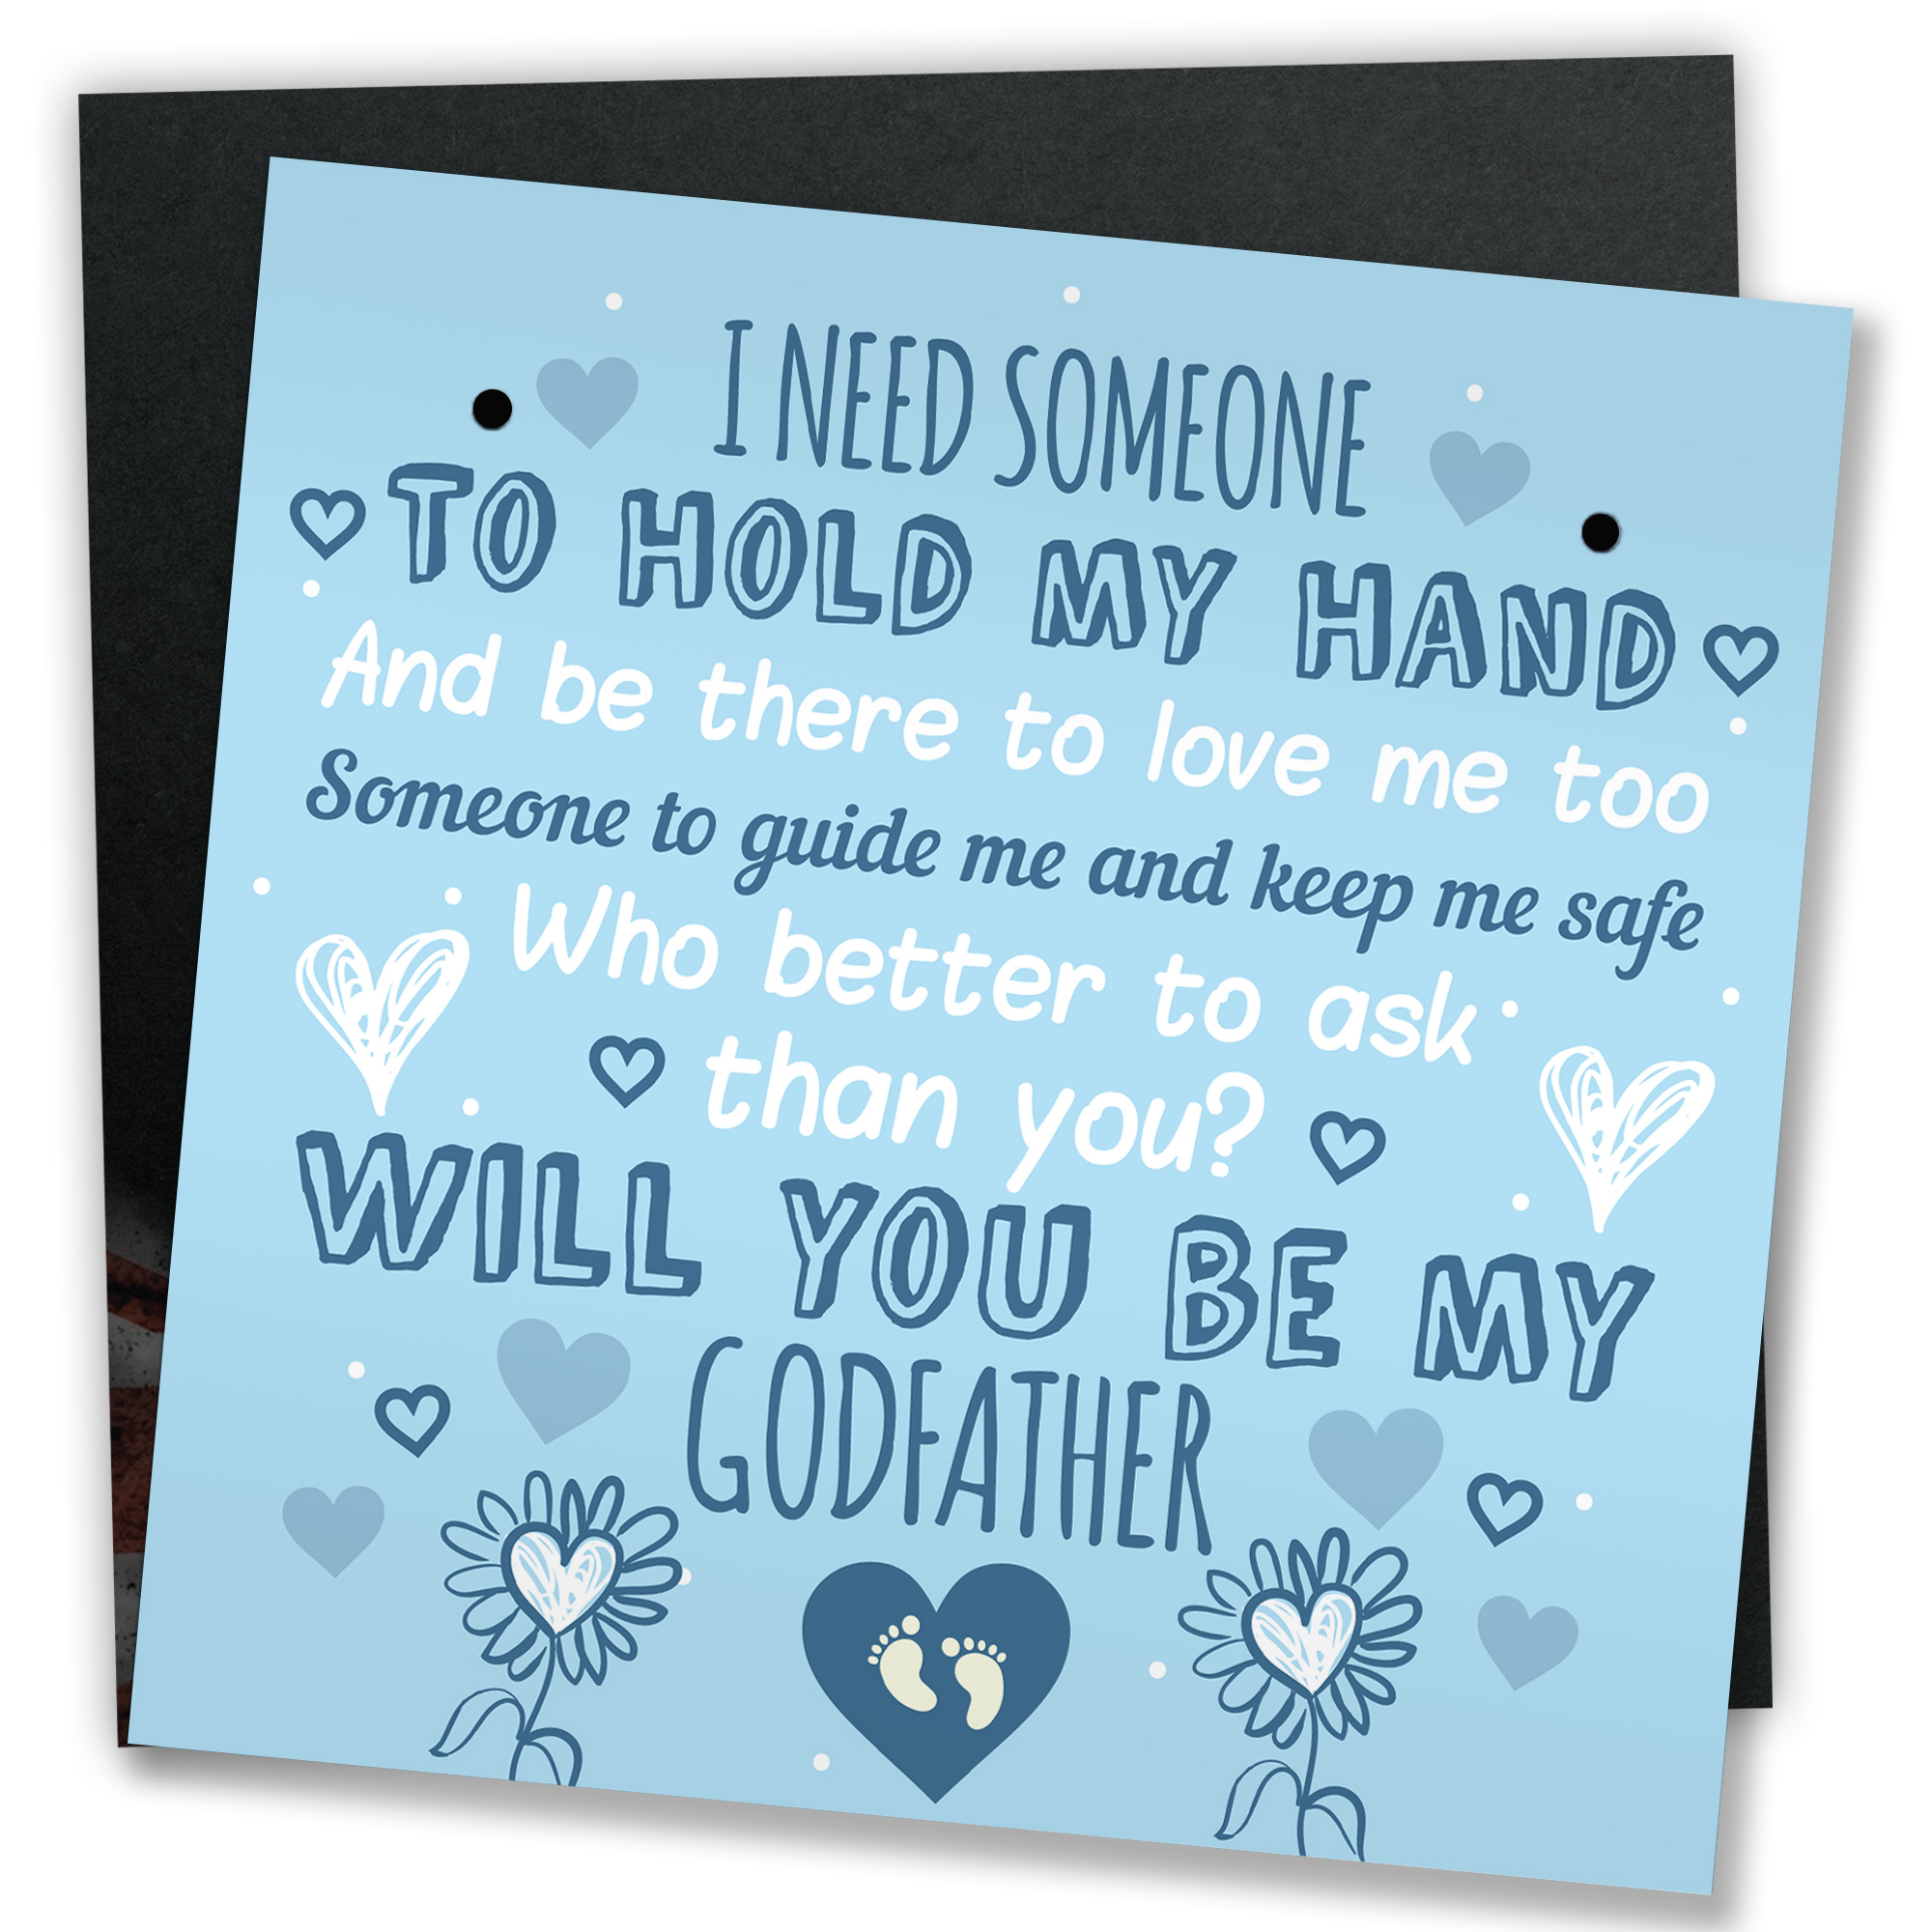 Will You Be My Godfather Gift Personalised Message in a Bottle Card Alternative